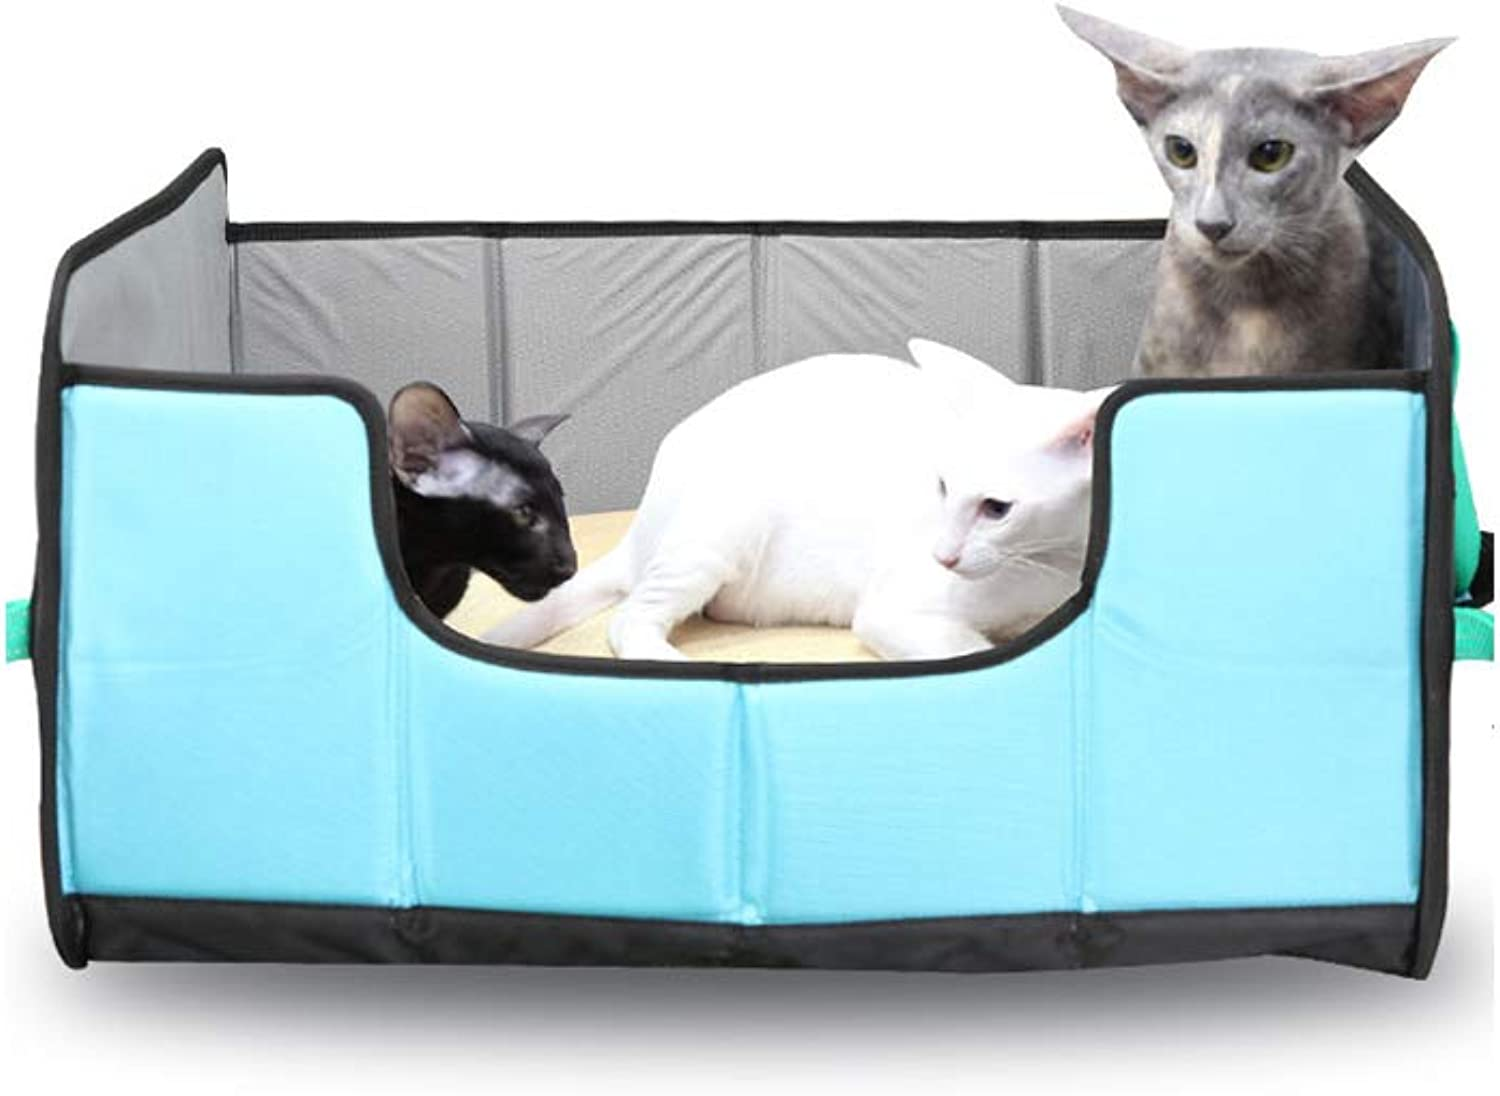 Pet Bed Environmental Predection EVA Material Big Space Folding Easy to Store Comfortable Kennel for Household and Travel Car Going Out with Pets,bluee,S